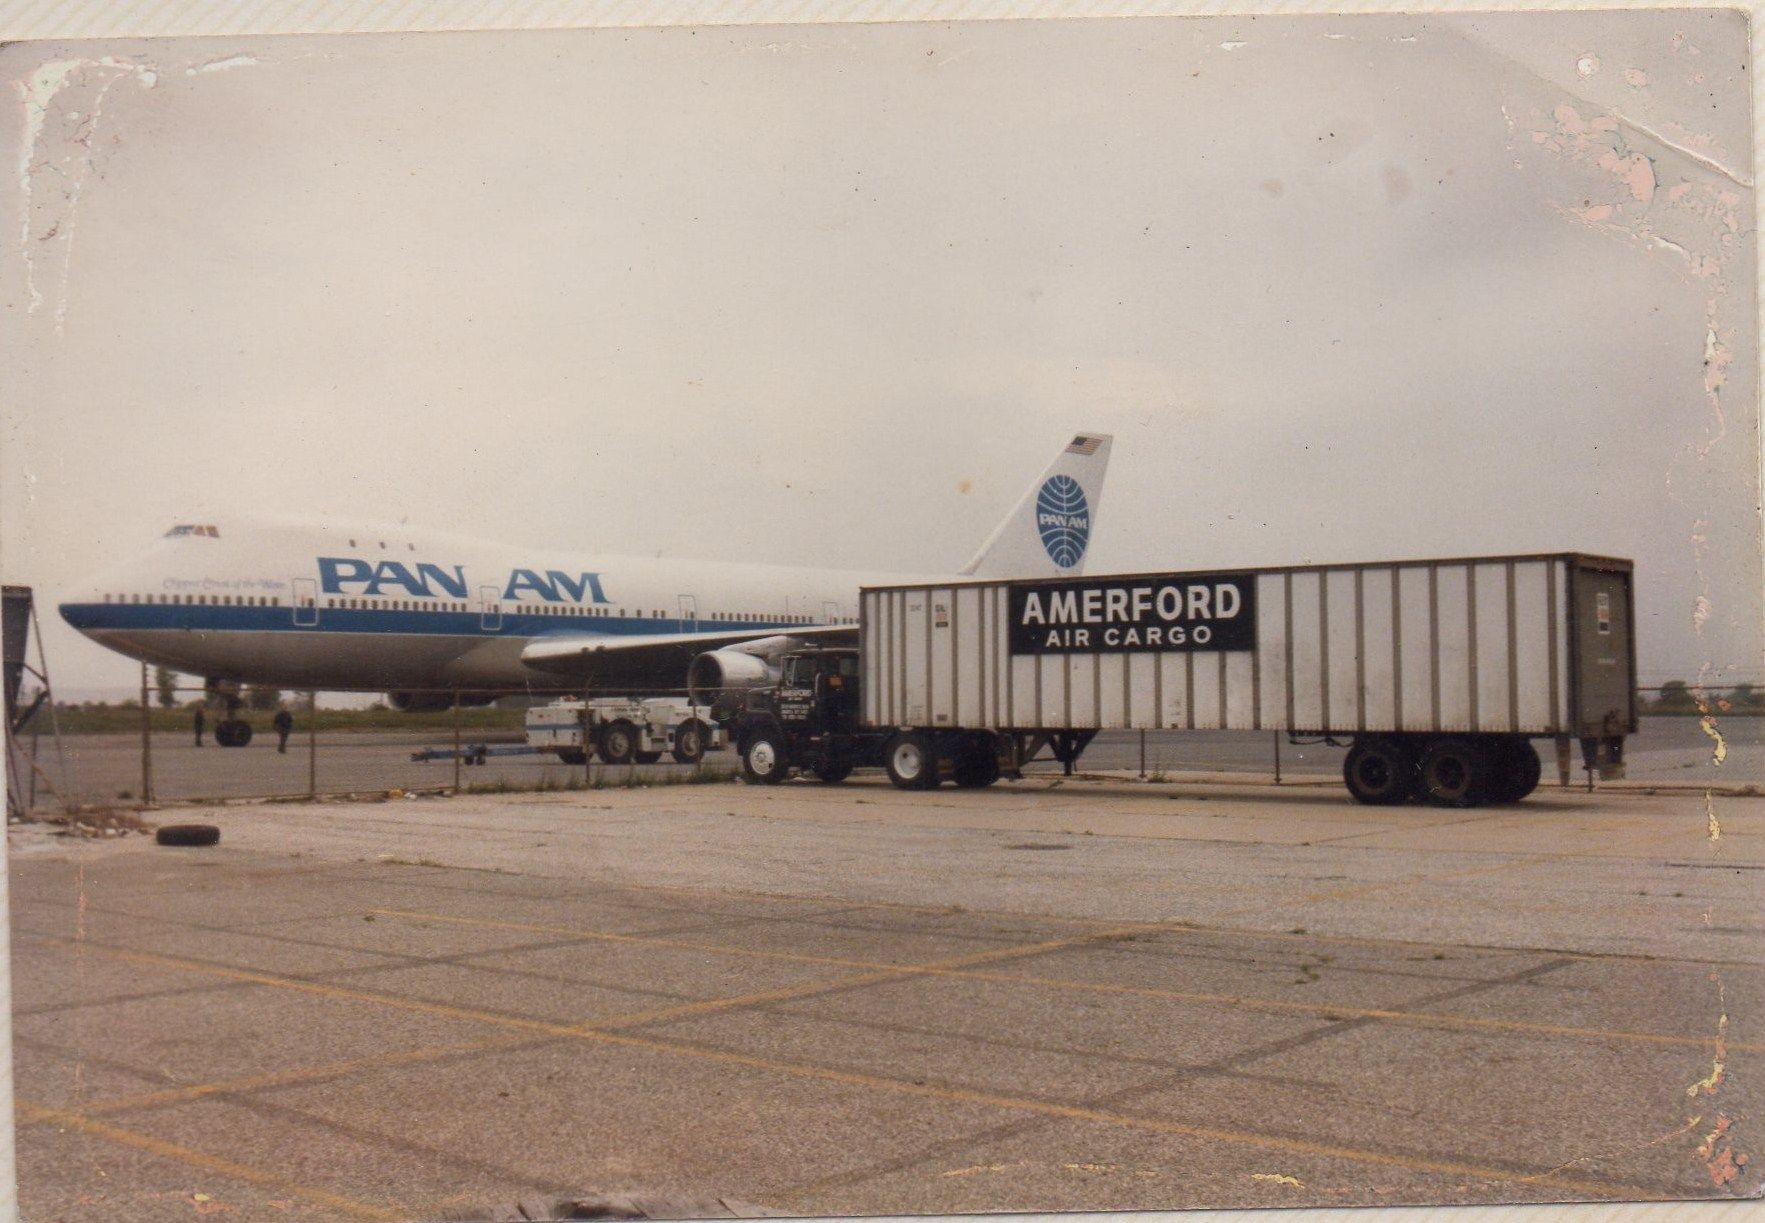 Kennedy Airport , Air cargo Teamster local 295 those